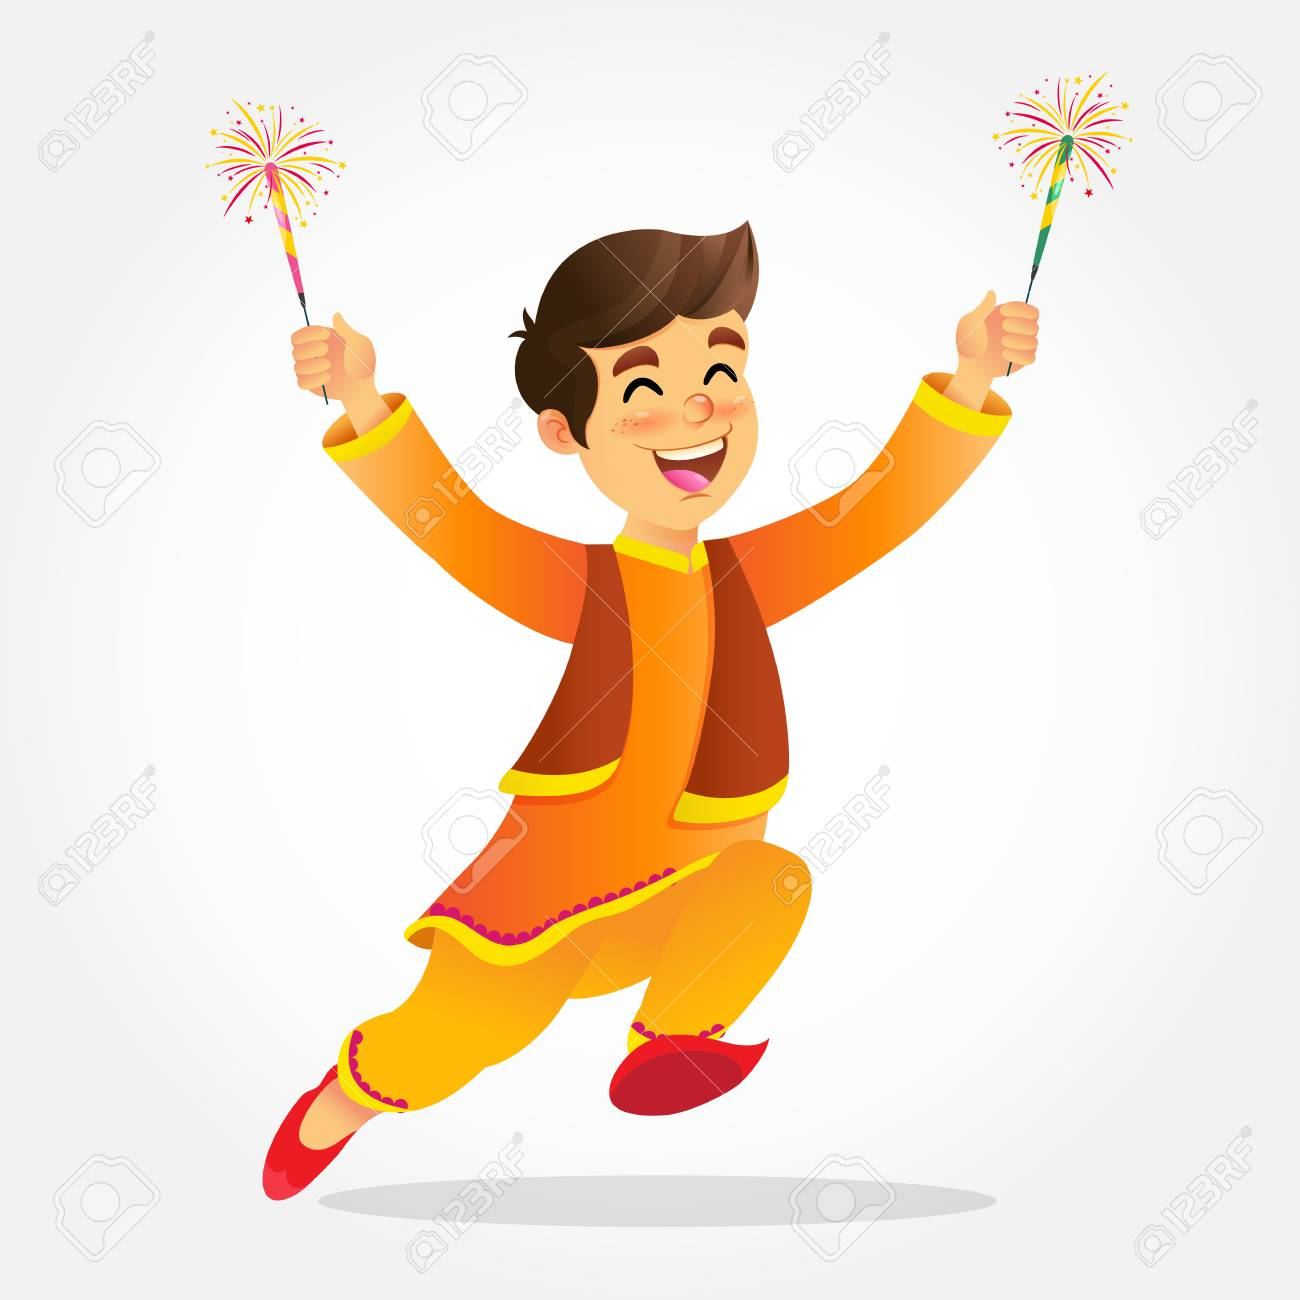 f2fe6eb0c Cute cartoon indian boy in traditional clothes jumping and playing with  firecracker celebrating the festival of